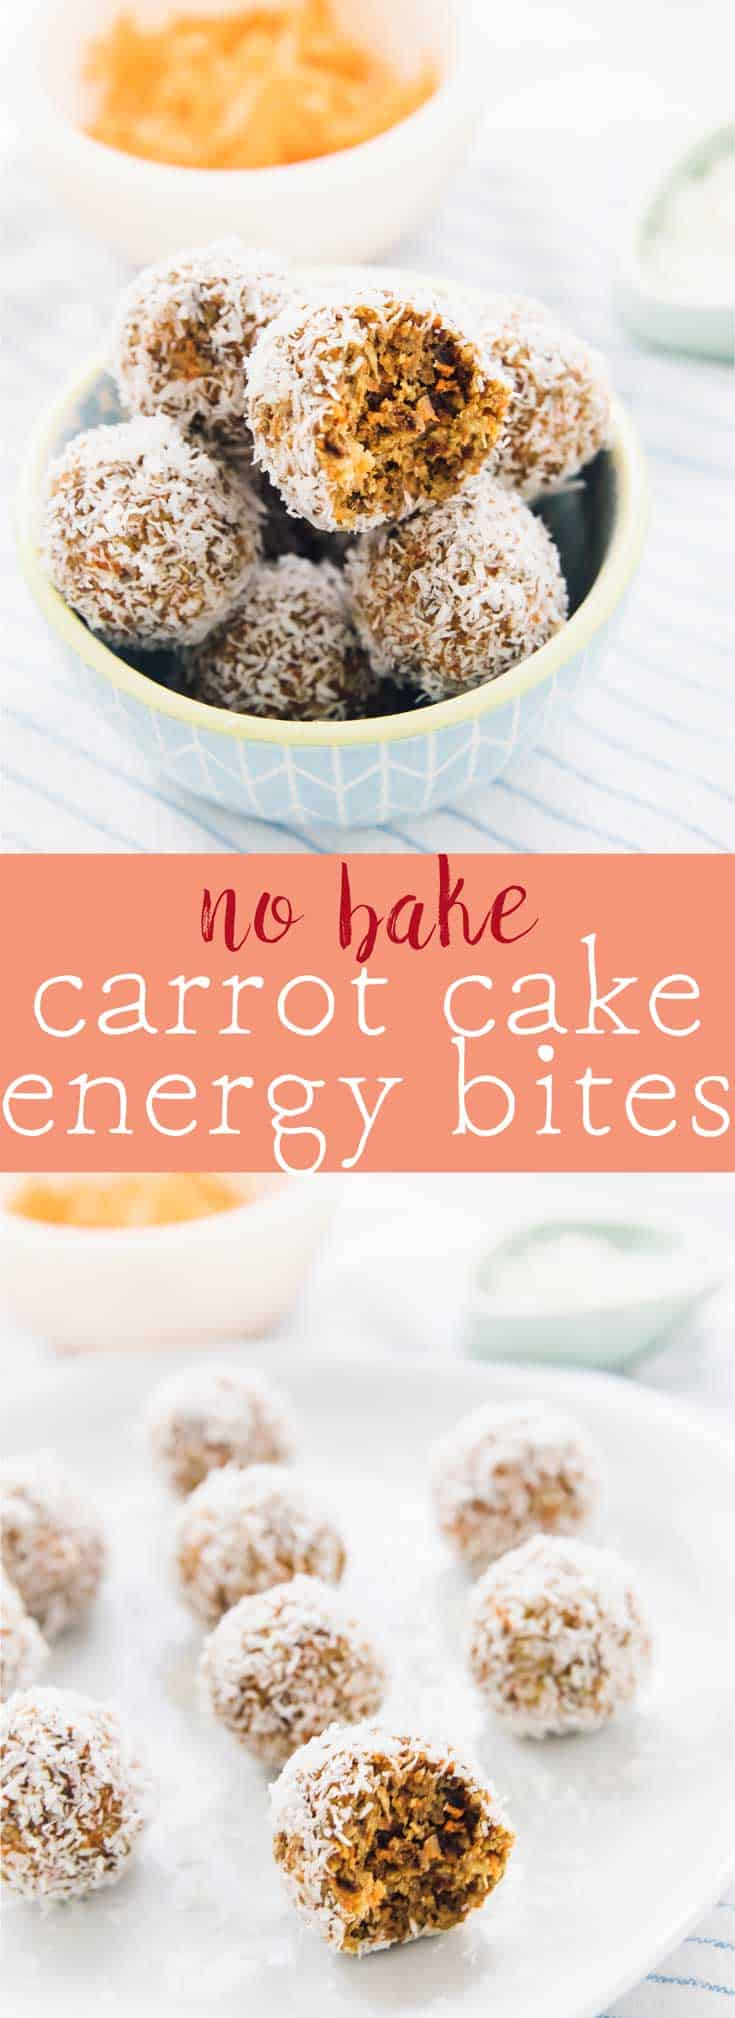 These No Bake Carrot Cake Energy Bites are made with only 5 ingredients, vegan and gluten-free and are a perfect quick healthy breakfast or snack! via https://jessicainthekitchen.com